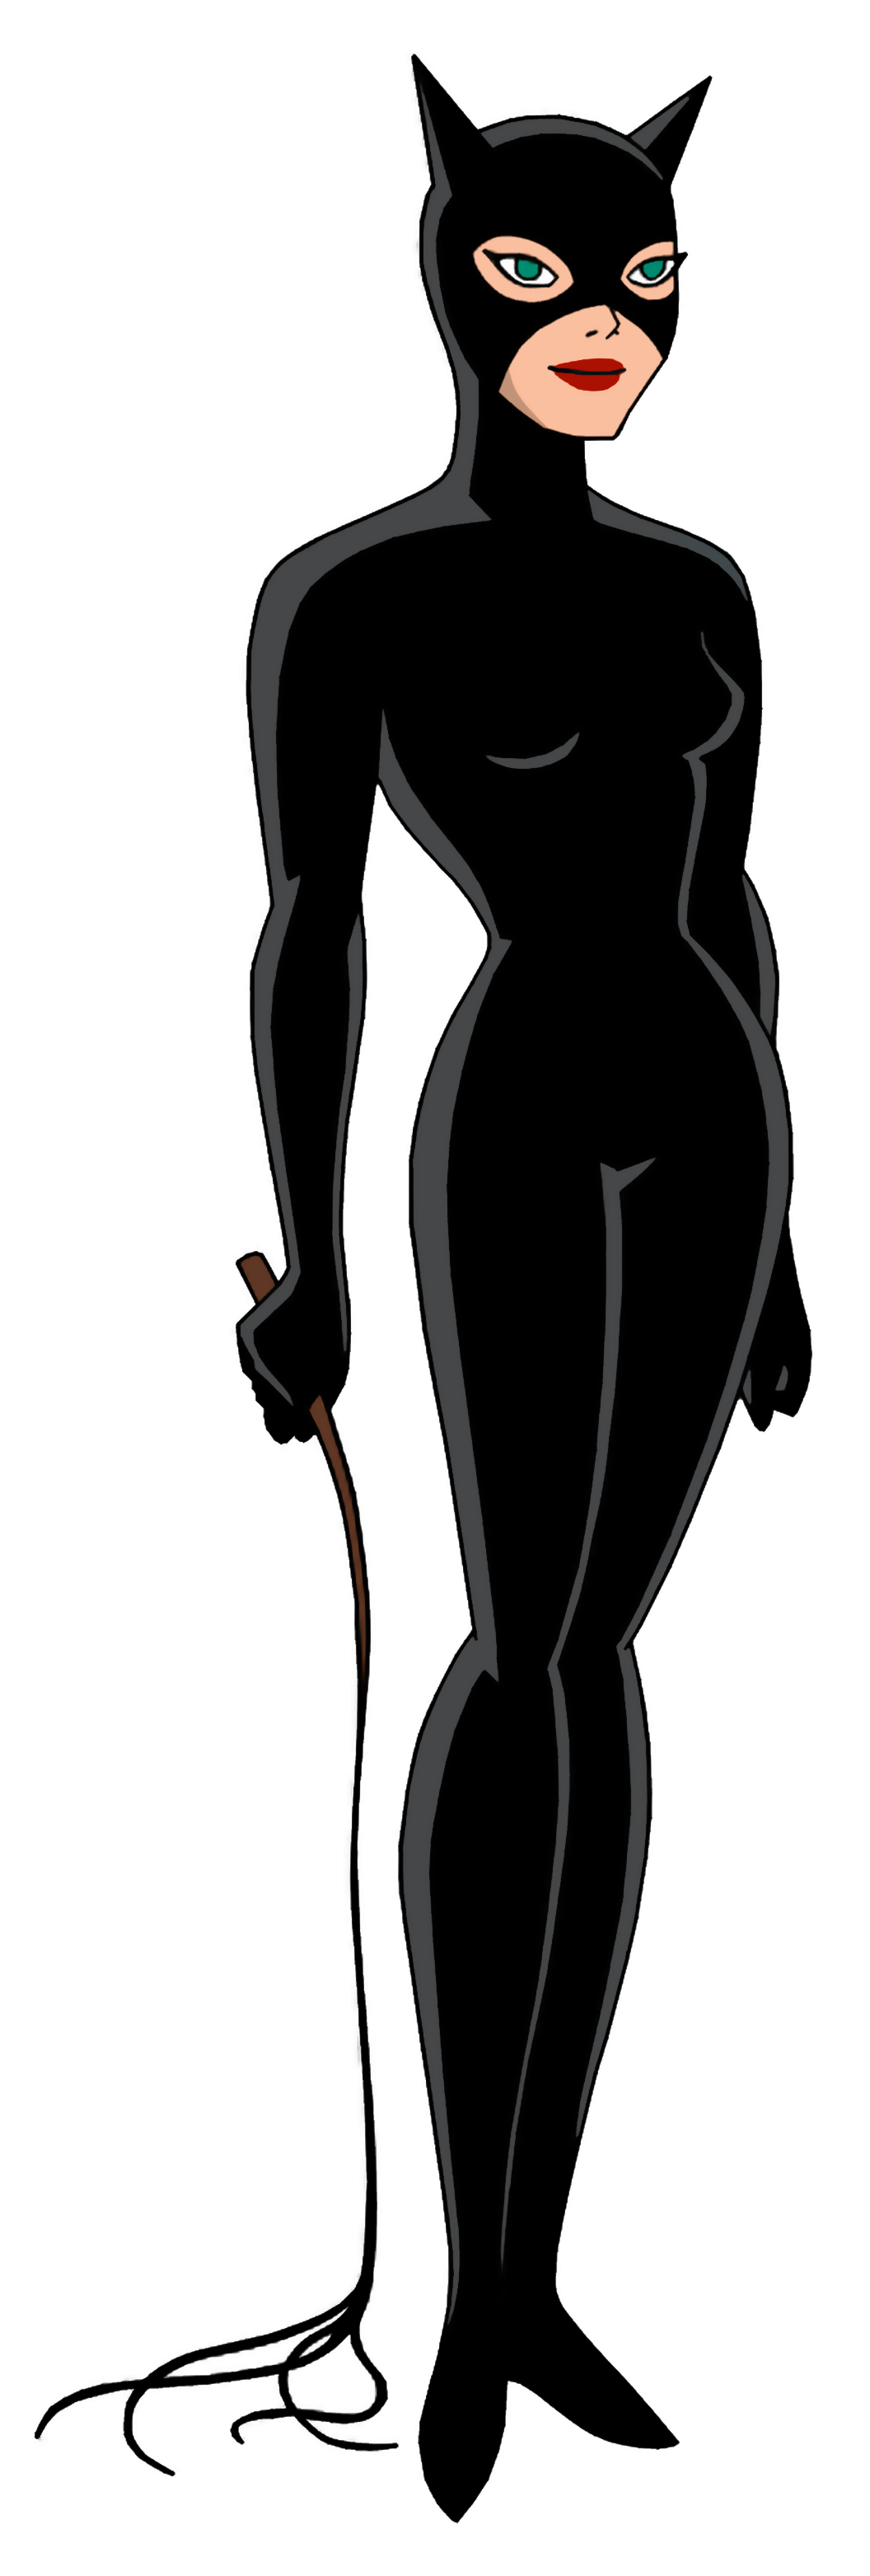 Catwoman transparent cartoon. Silhouette at getdrawings com